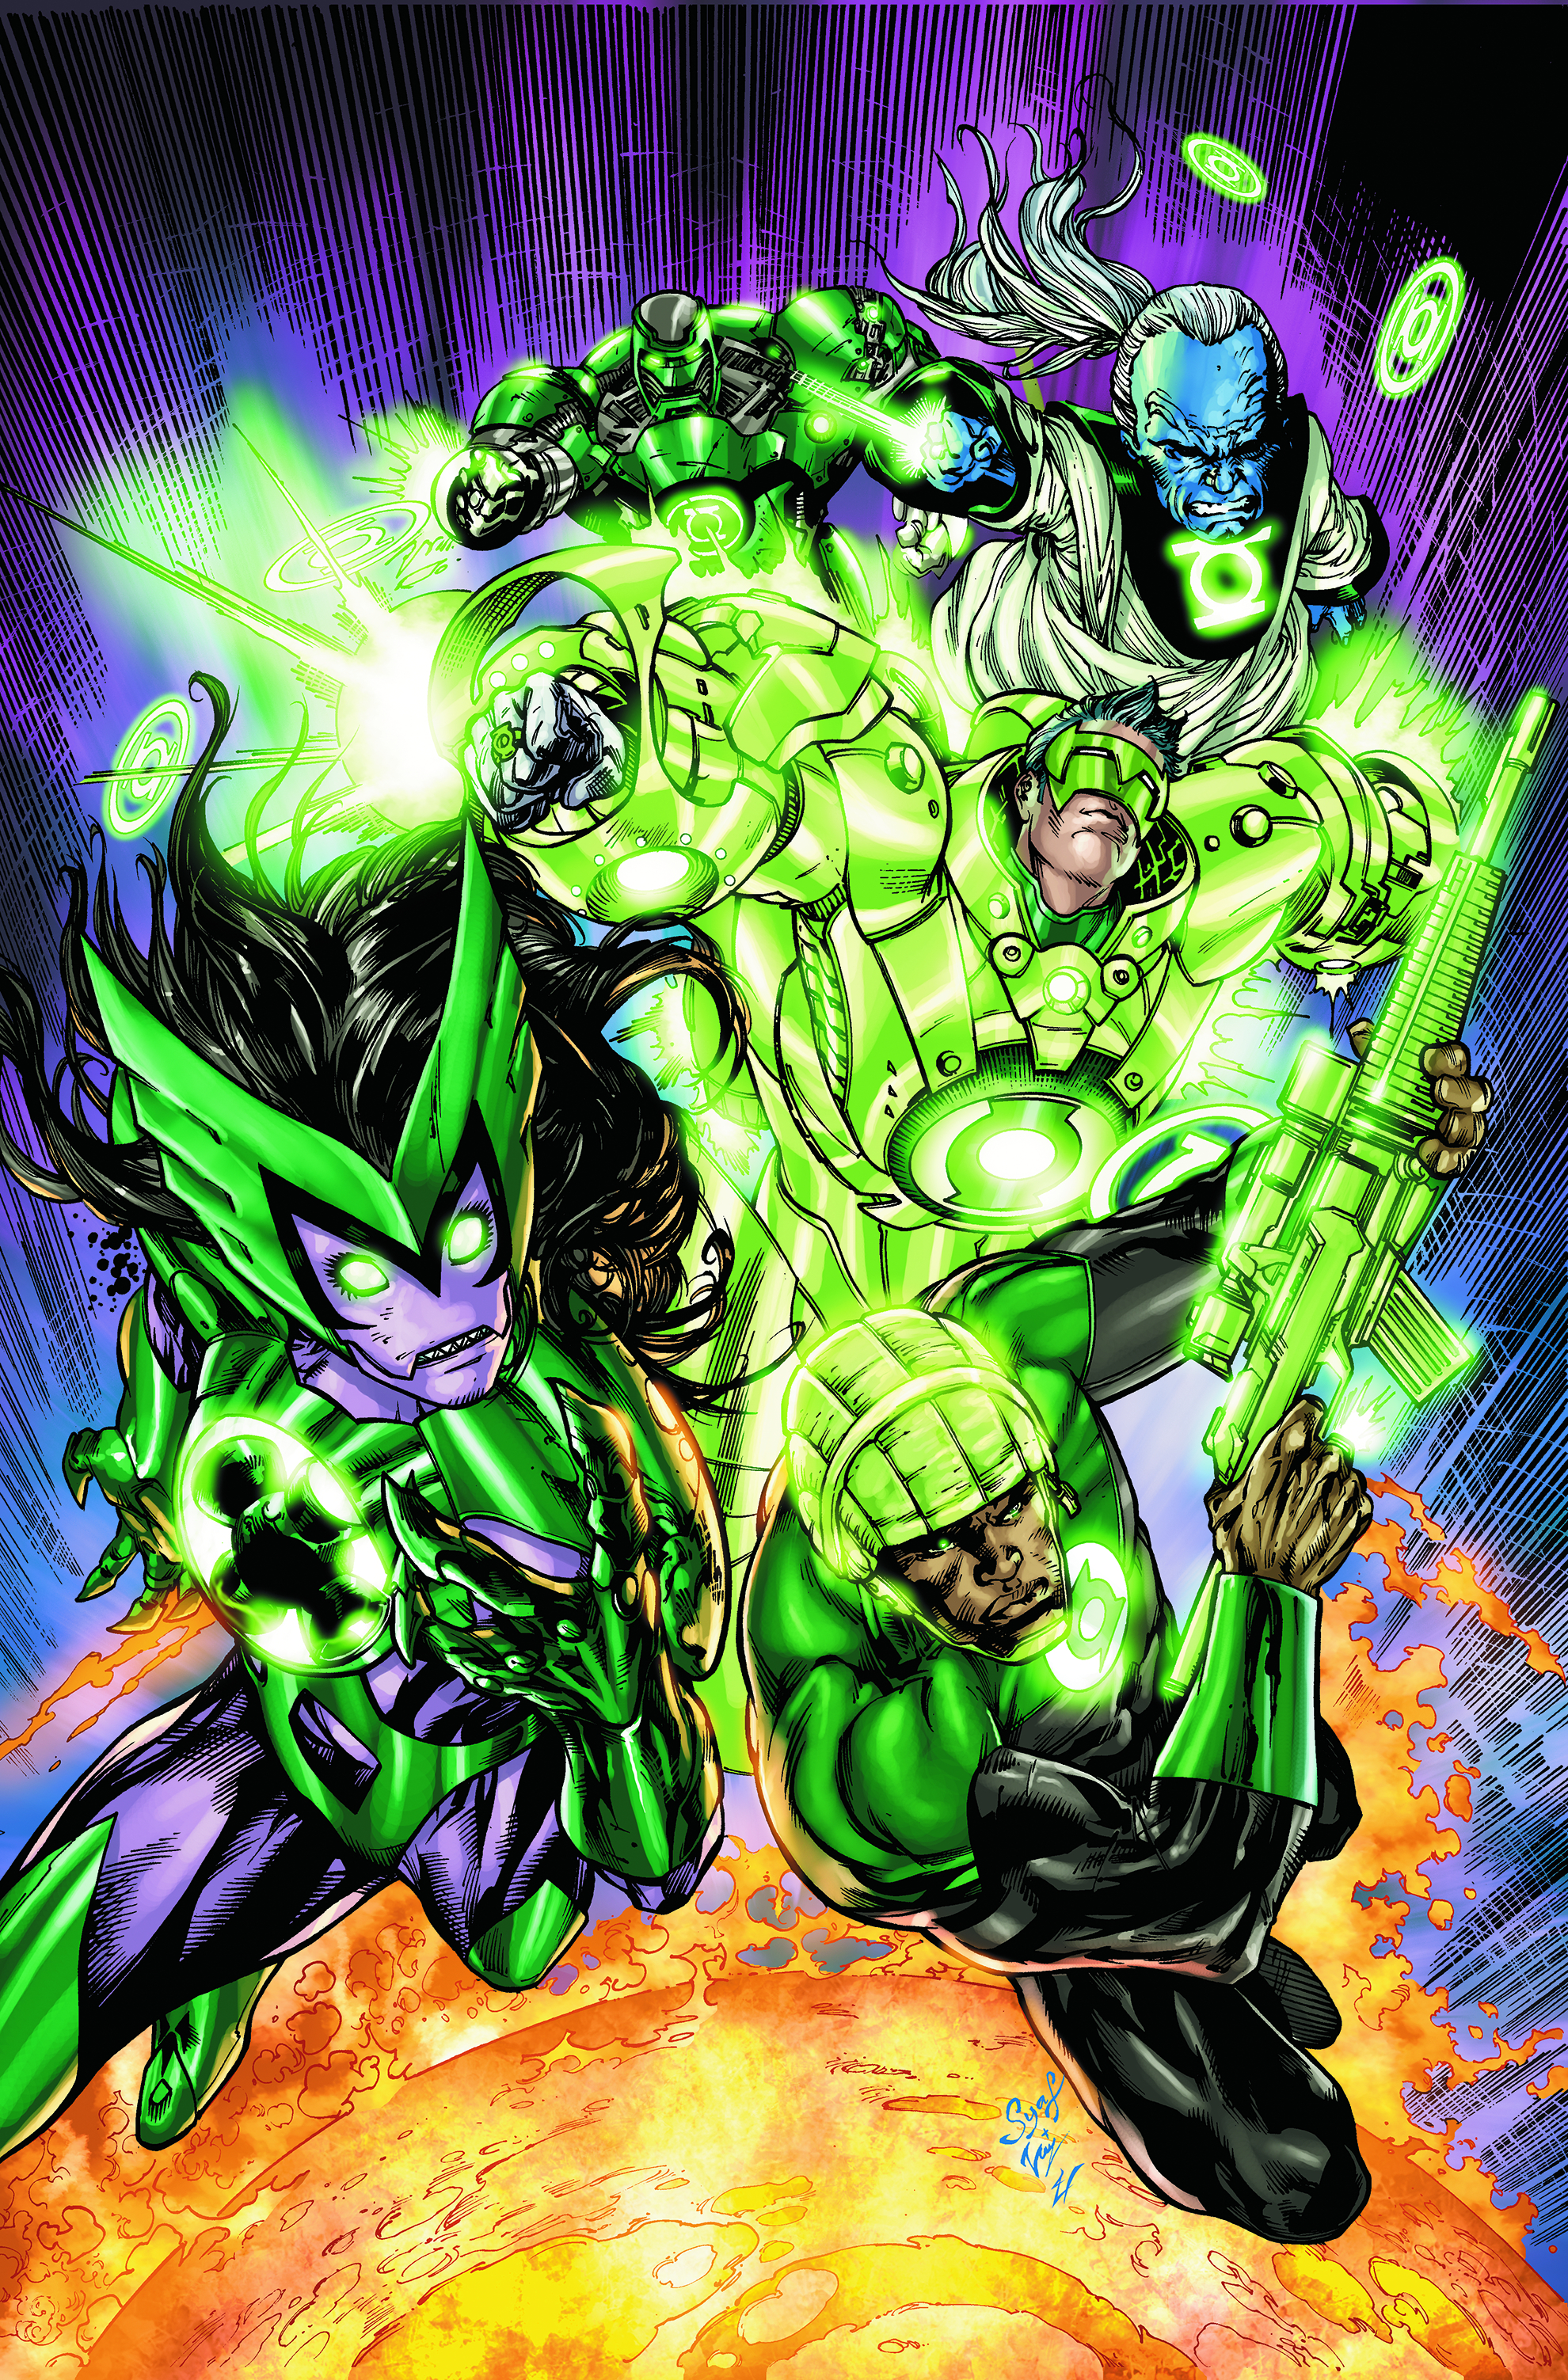 GREEN LANTERN CORPS #49 (BRIGHTEST DAY)